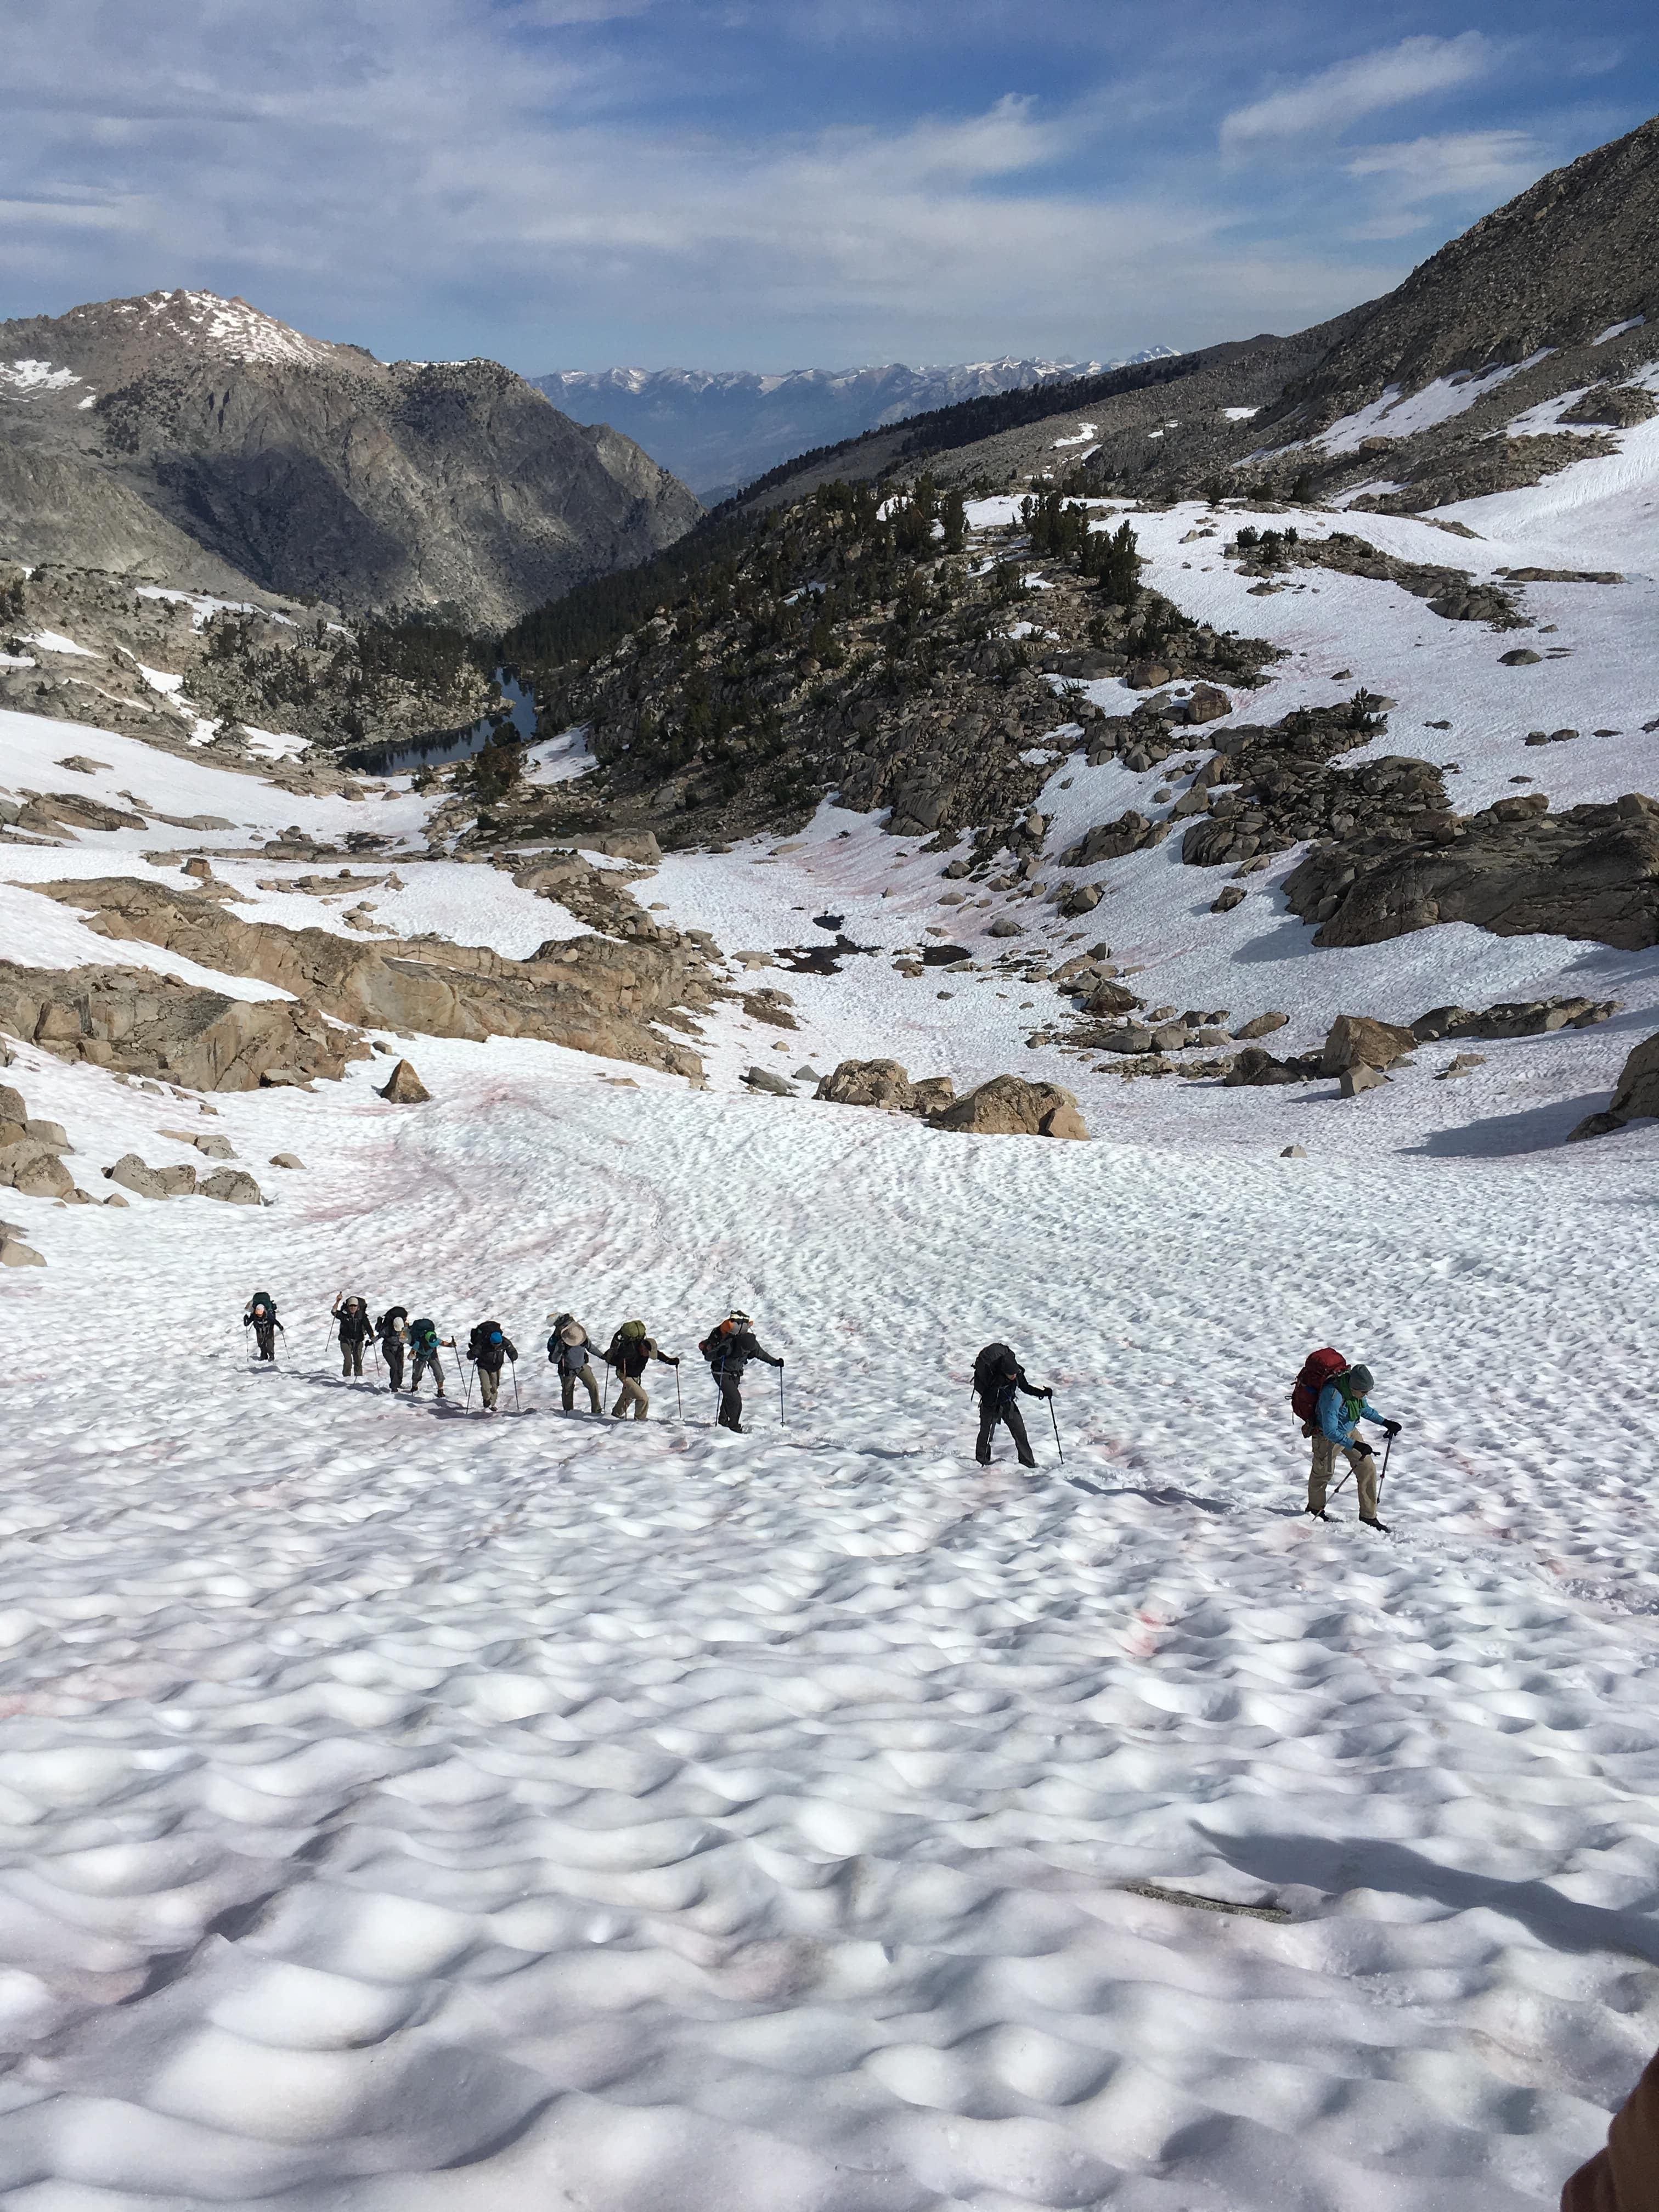 2017 - Trans-Sierra Xtreme Challenge, scaling Colby Pass